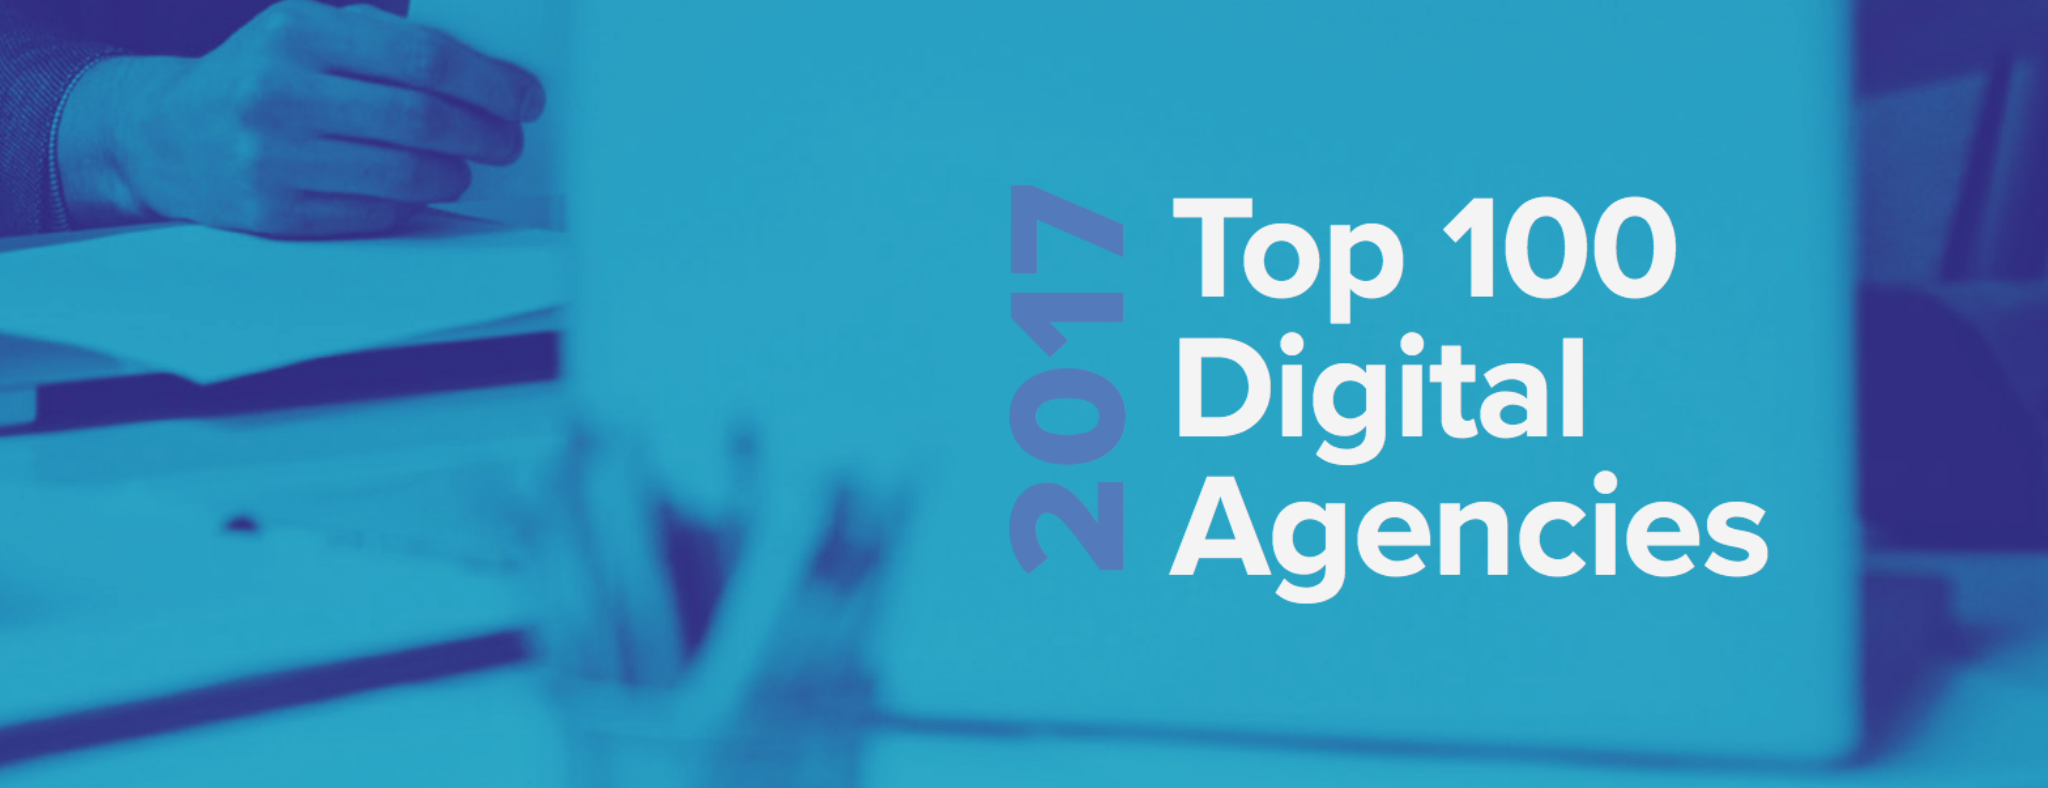 AND Digital are 36th Top UK Digital Agency on Econsultancy Top 100 List